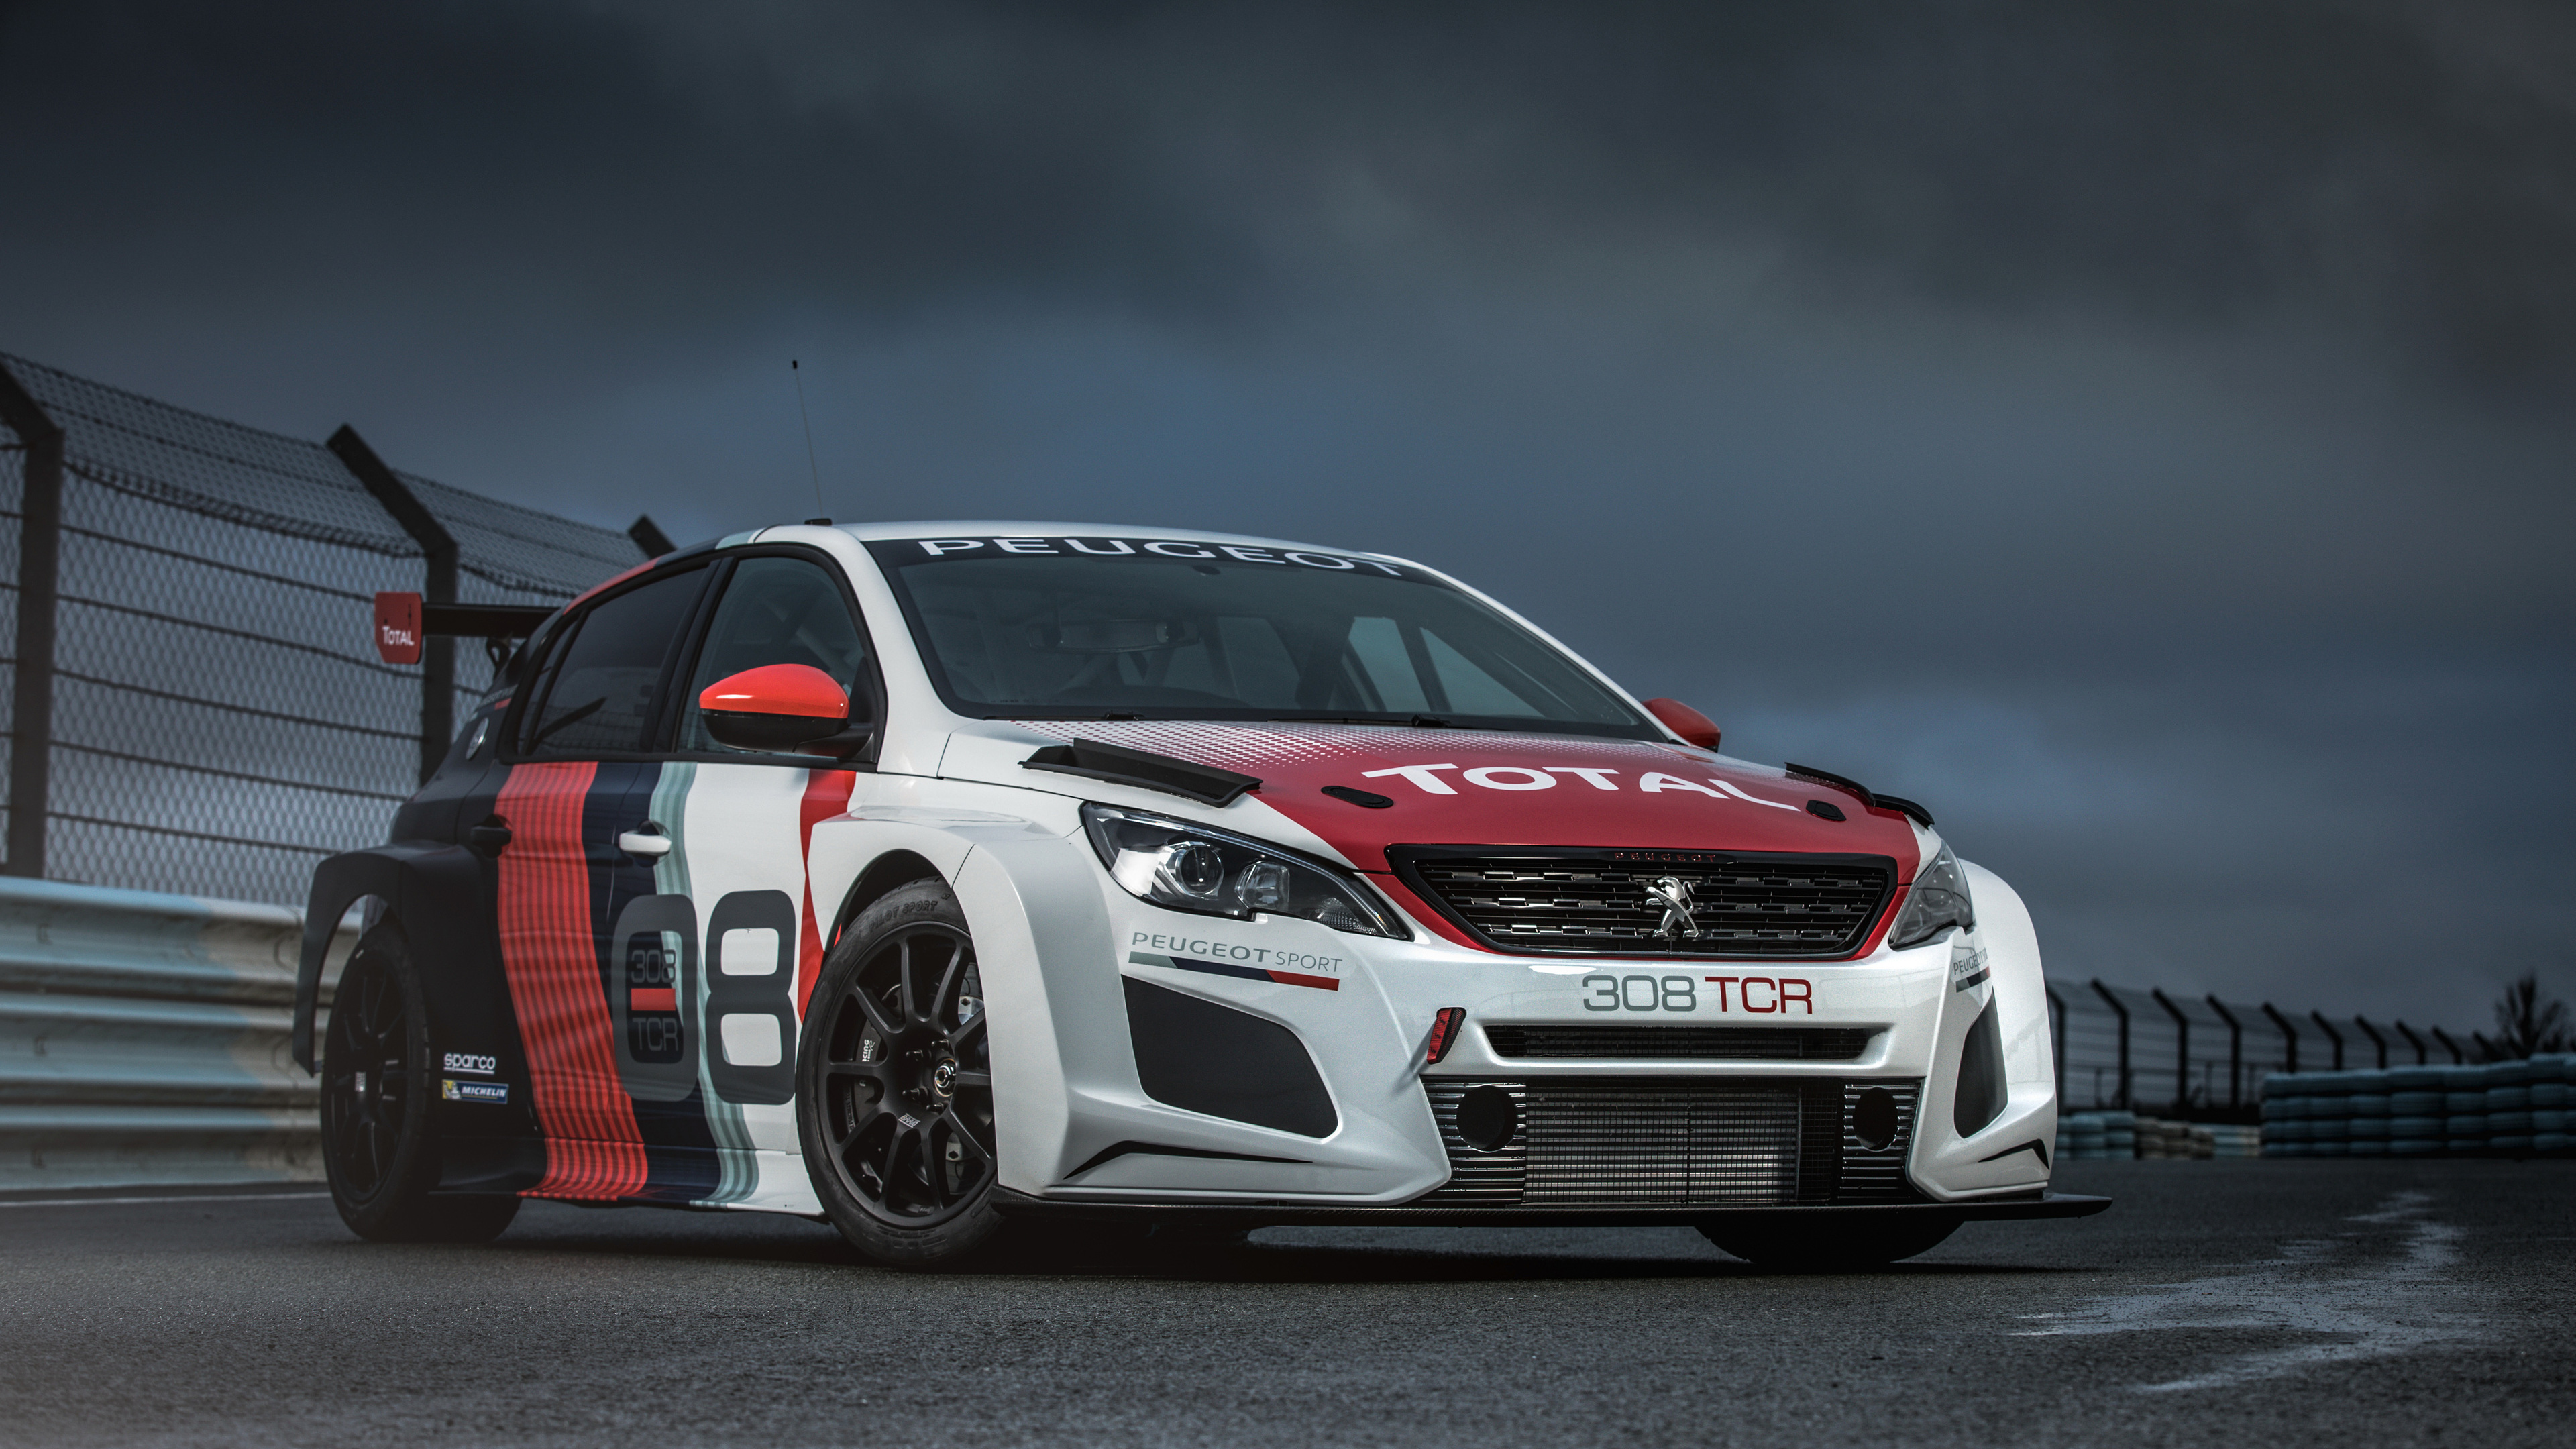 peugeot 308 tcr 2018 1539108917 - Peugeot 308 TCR 2018 - peugeot wallpapers, peugeot 308 tcr wallpapers, hd-wallpapers, cars wallpapers, 4k-wallpapers, 2018 cars wallpapers